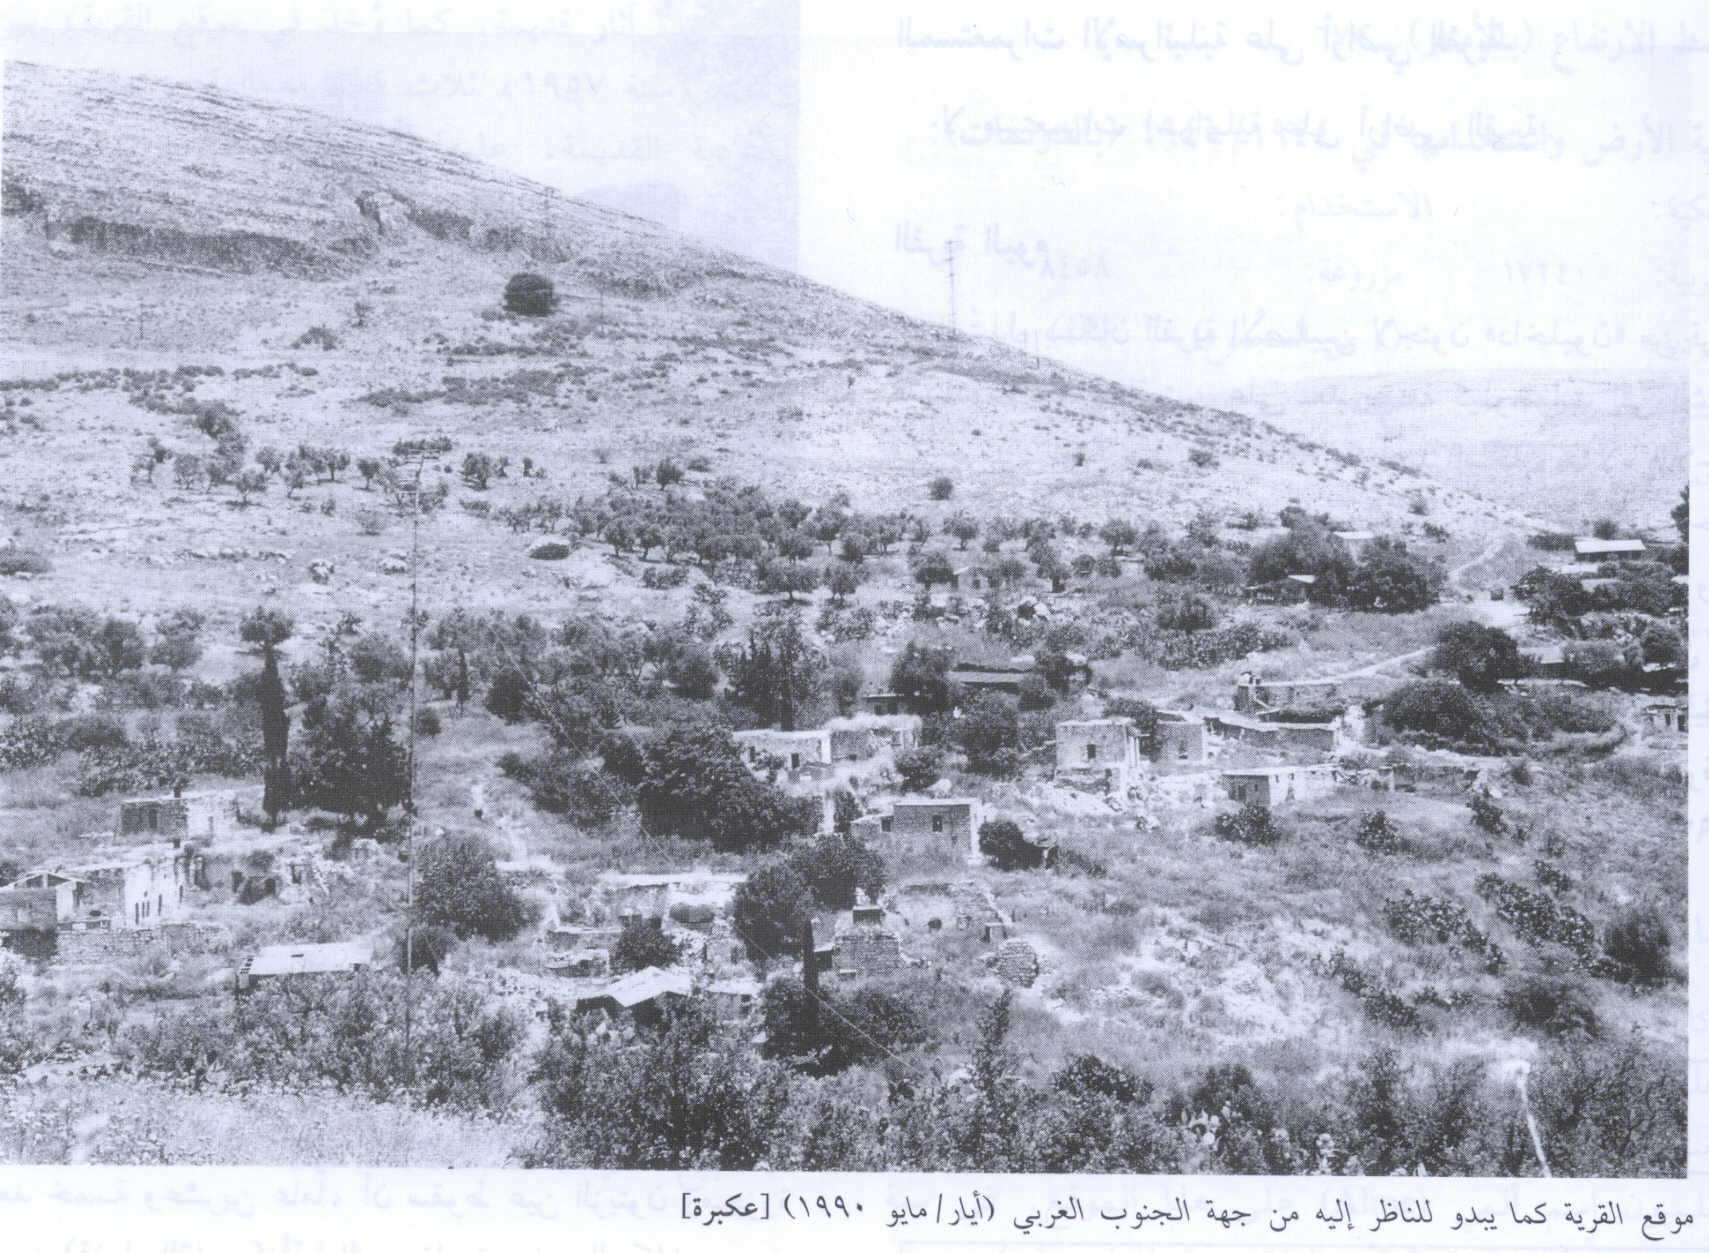 'Akbara - عكبرة : General View Of The Village Site And It's Remains In 1990